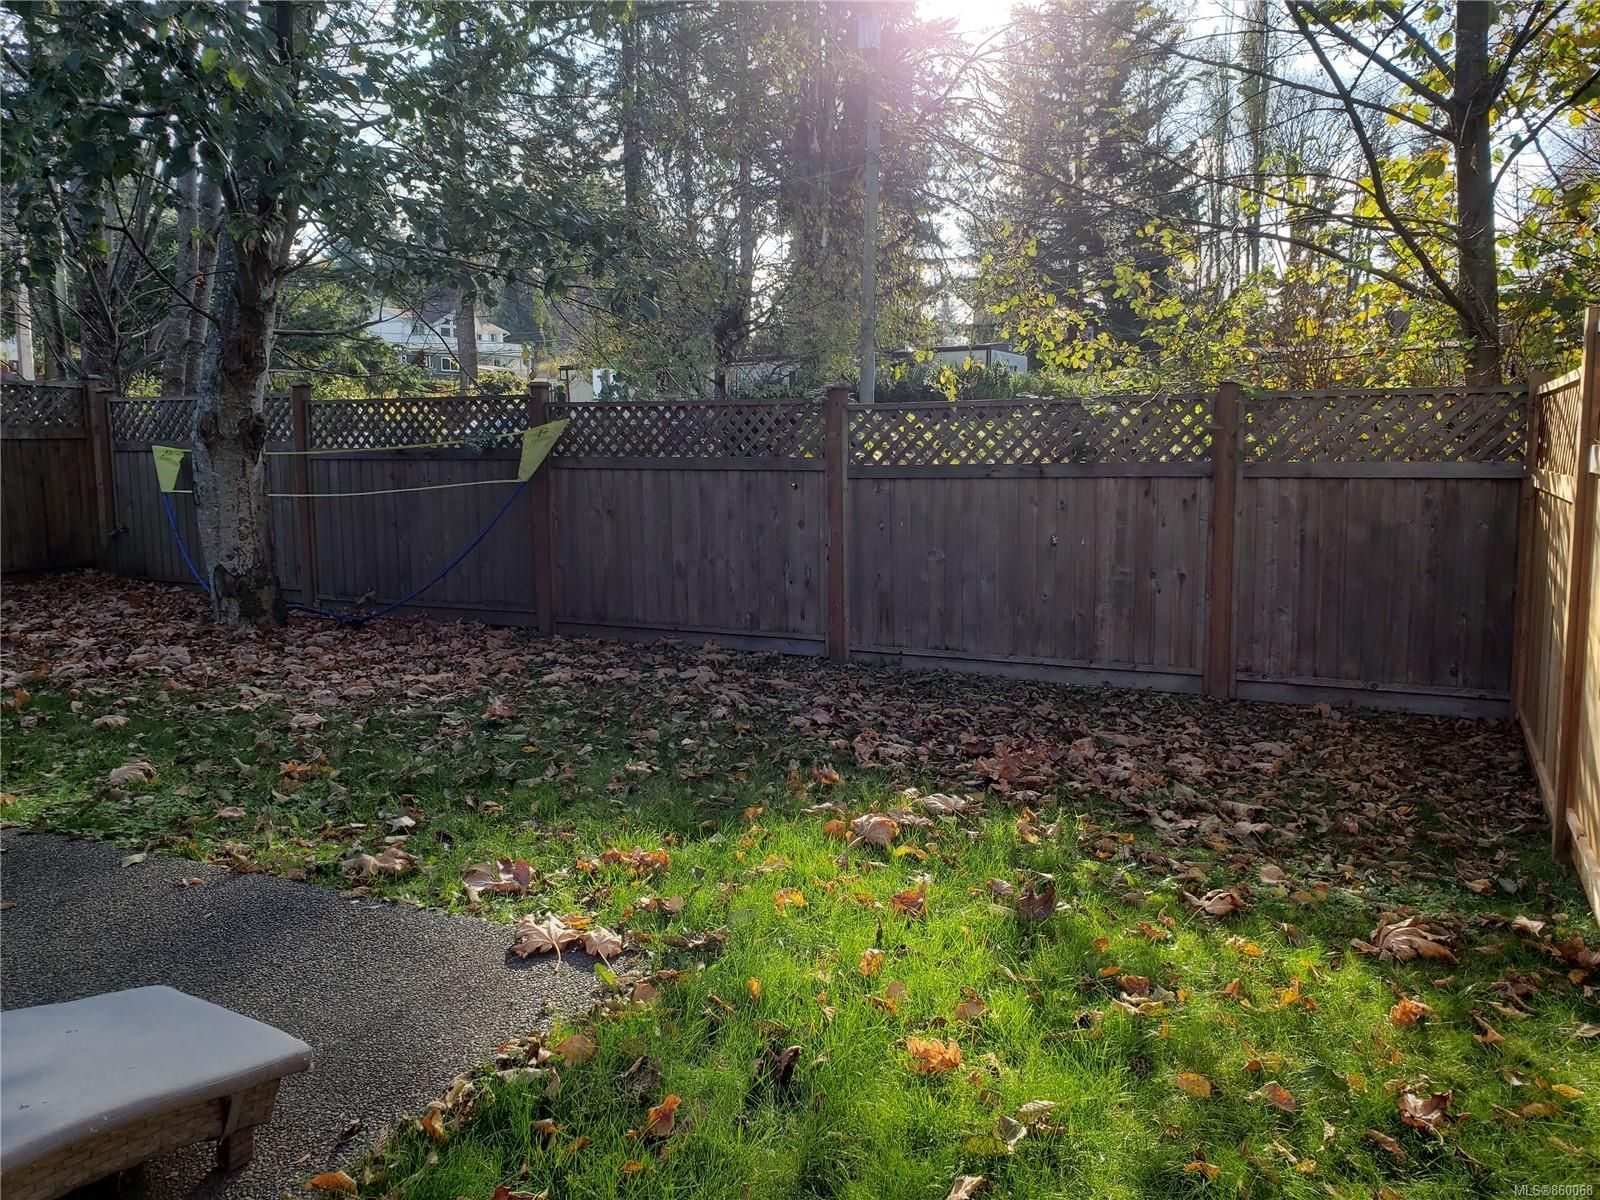 Photo 29: Photos: 105 2787 1st St in Courtenay: CV Courtenay City House for sale (Comox Valley)  : MLS®# 860068